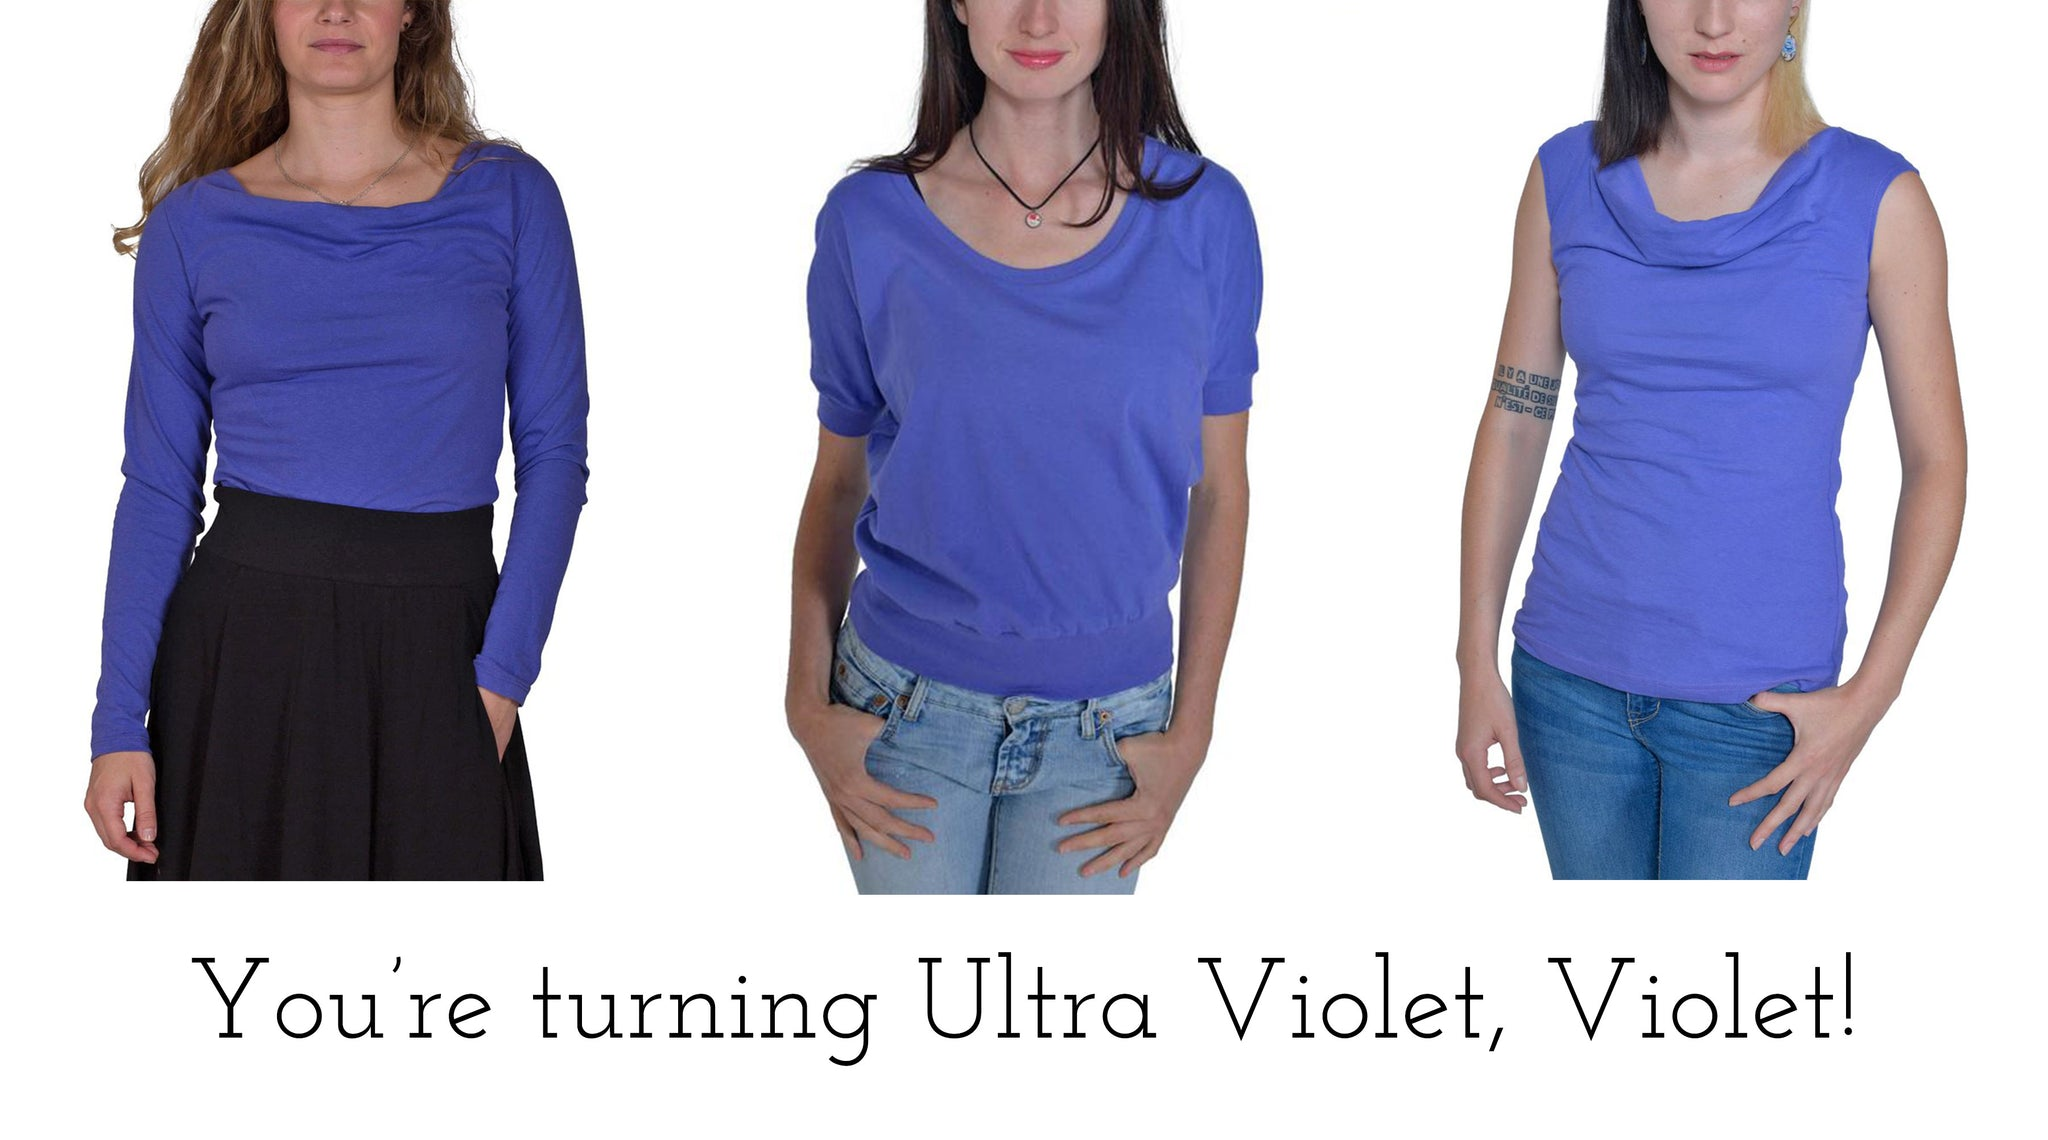 You're Turning Ultra Violet, Violet!